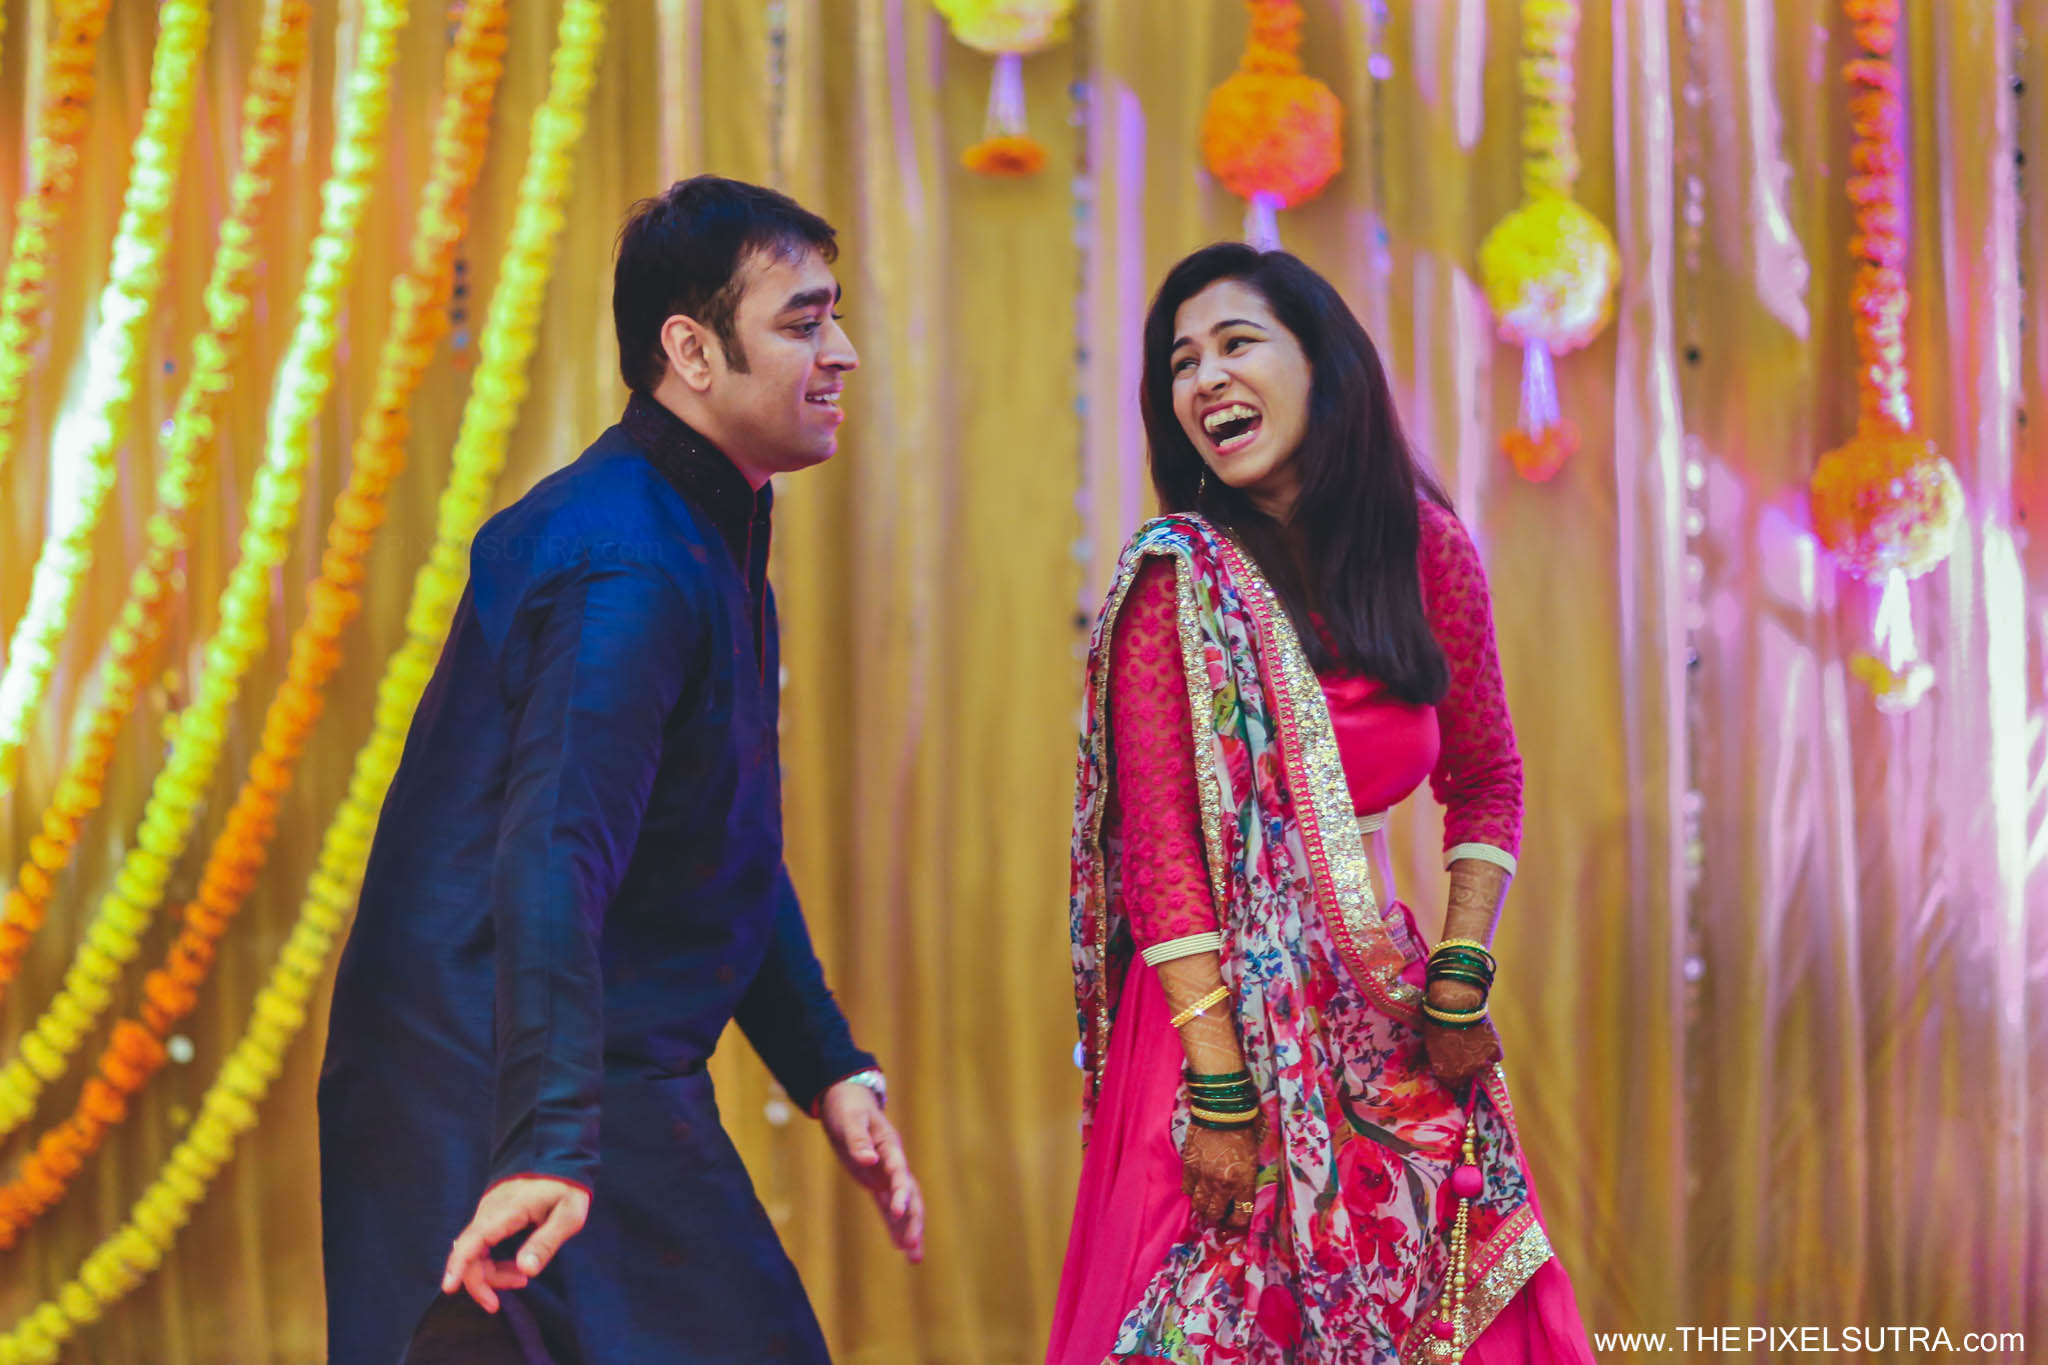 The Pixel Sutra Nachiket x Priyanka Candid Wedding photographer Mumbai Best  (5).jpg